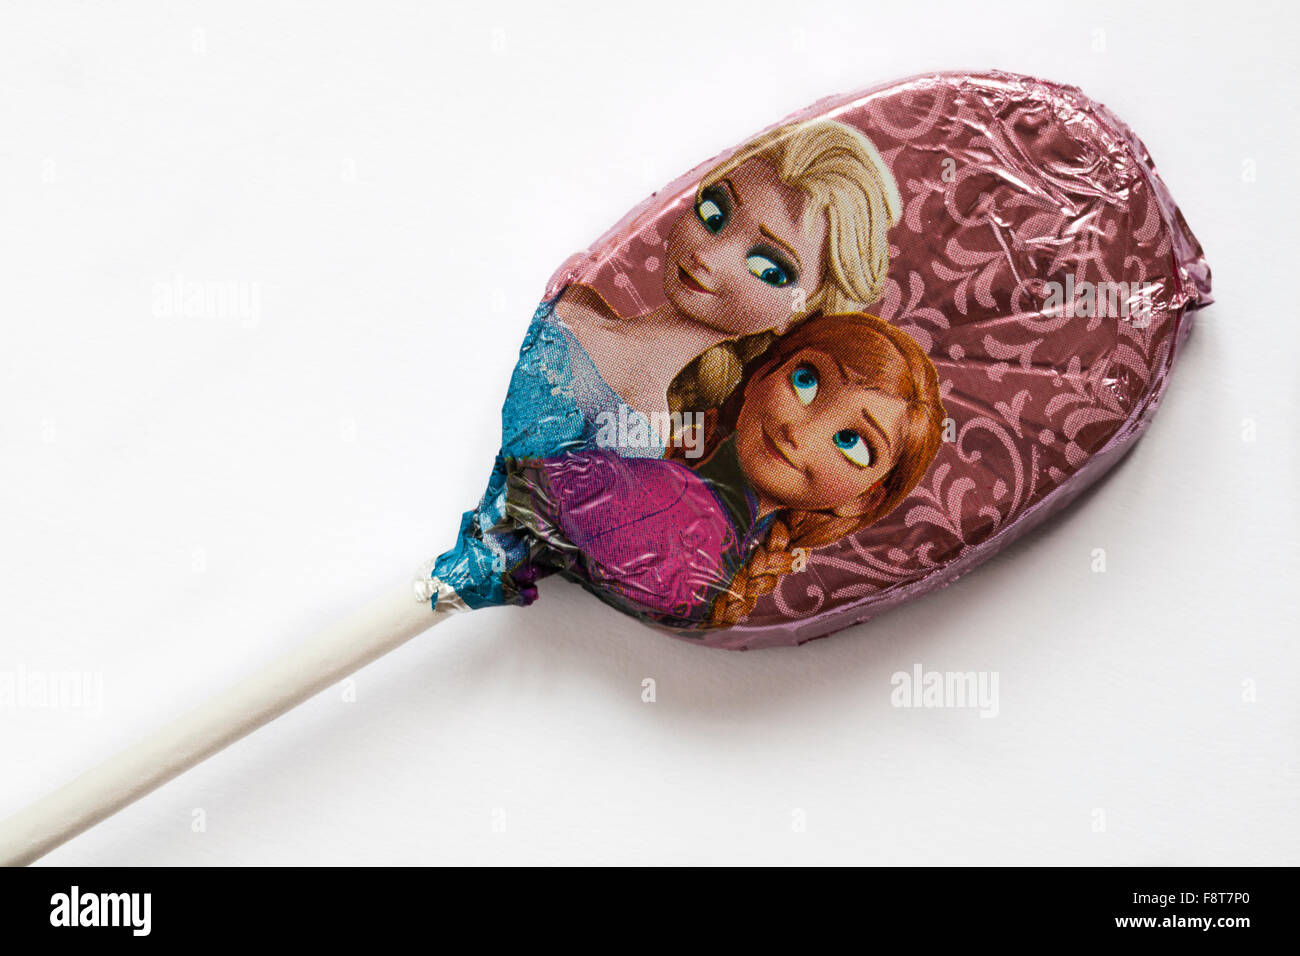 Elsa Anna M S Chocolate Lollies Foil Wrapped With Elsa And Anna Characters